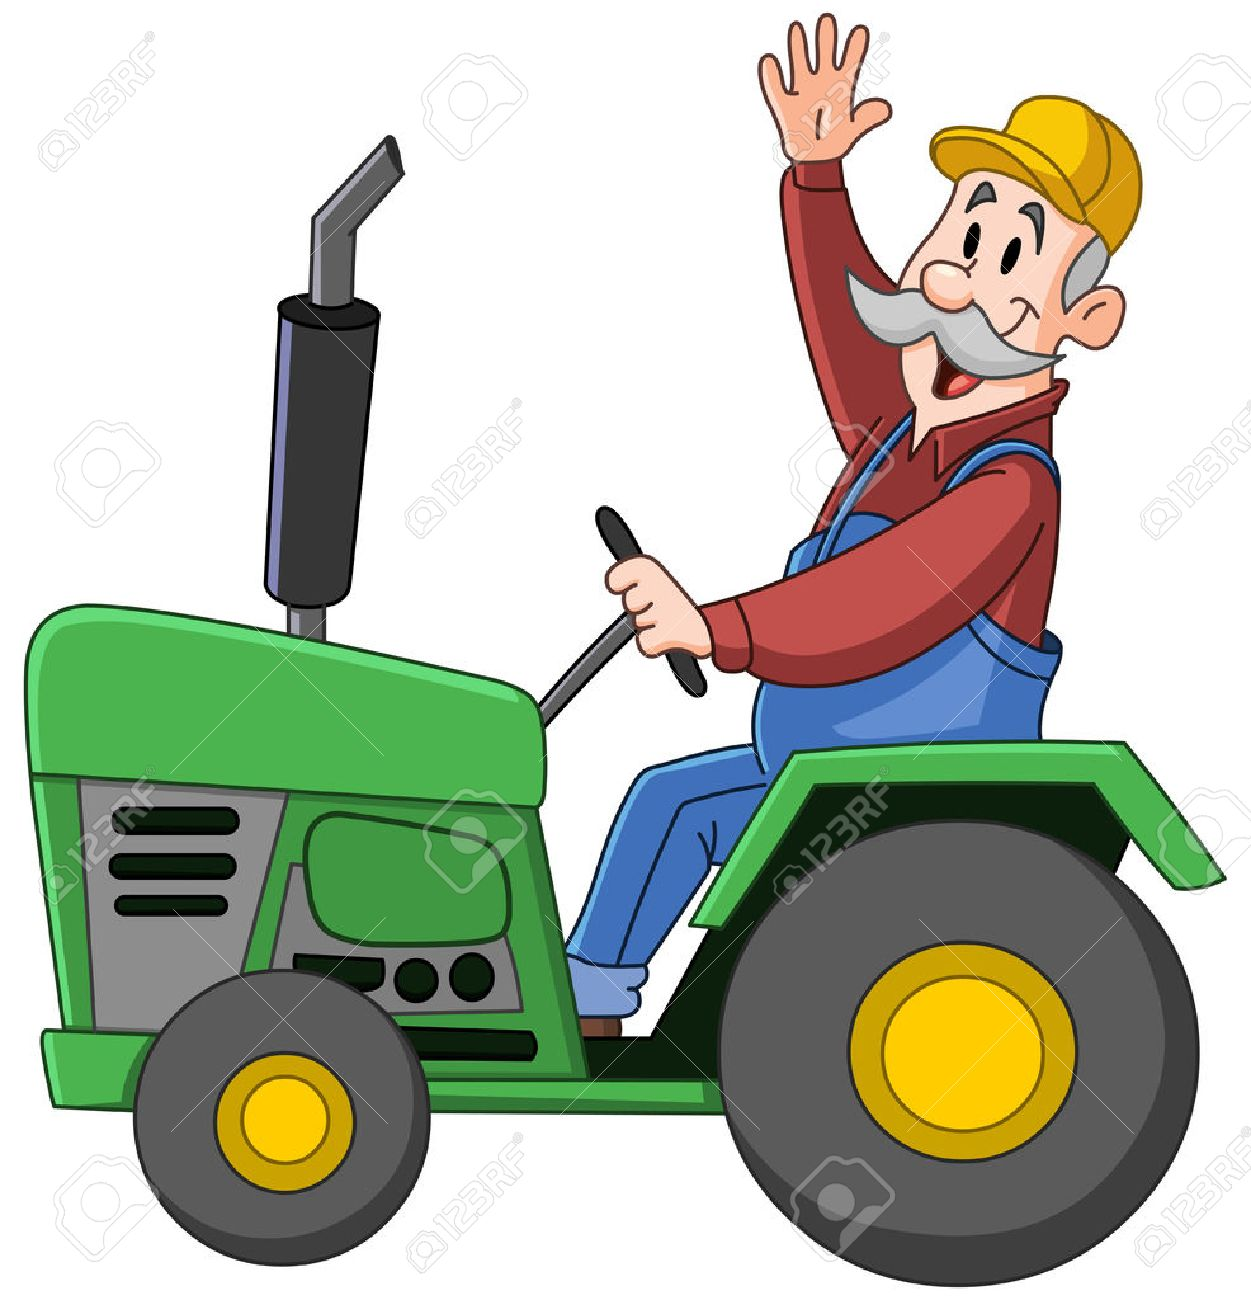 Smiling farmer driving a tractor and waving.